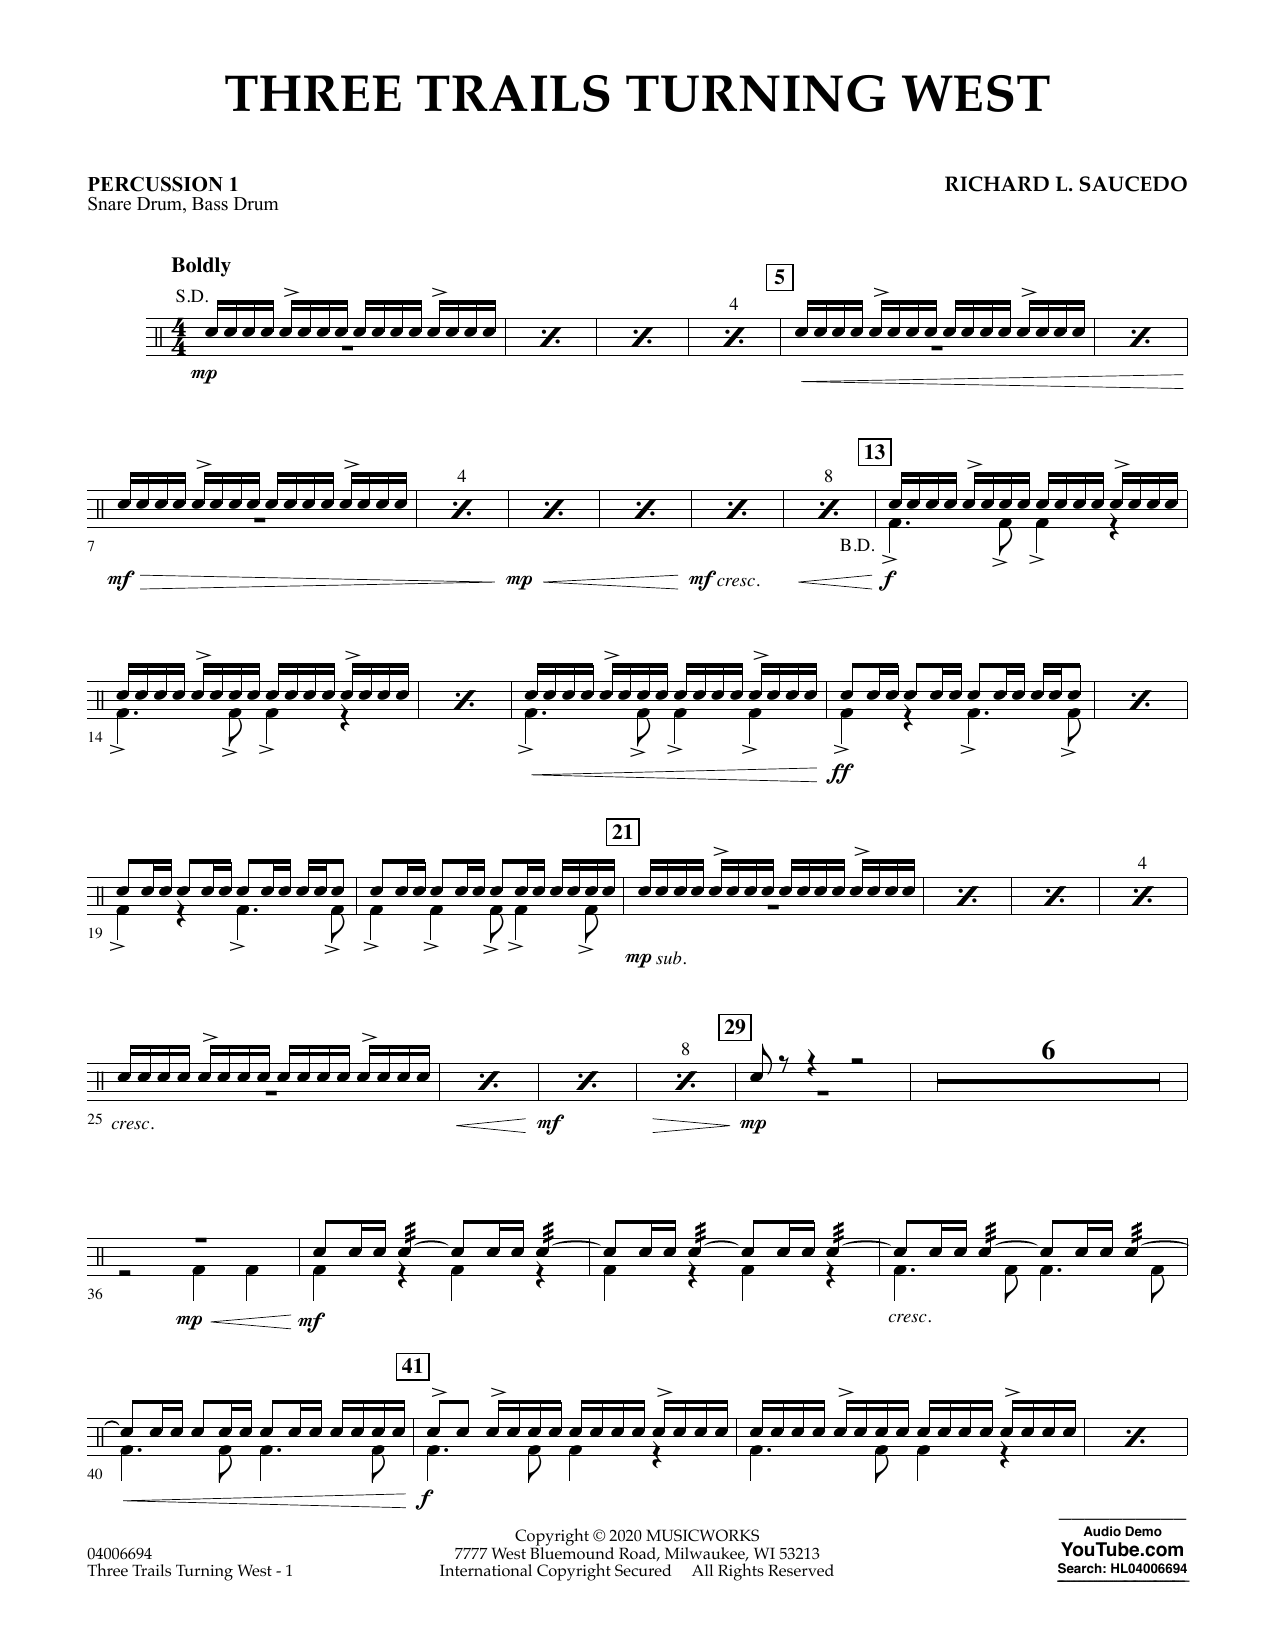 Richard L. Saucedo Three Trails Turning West - Percussion 1 sheet music notes and chords. Download Printable PDF.